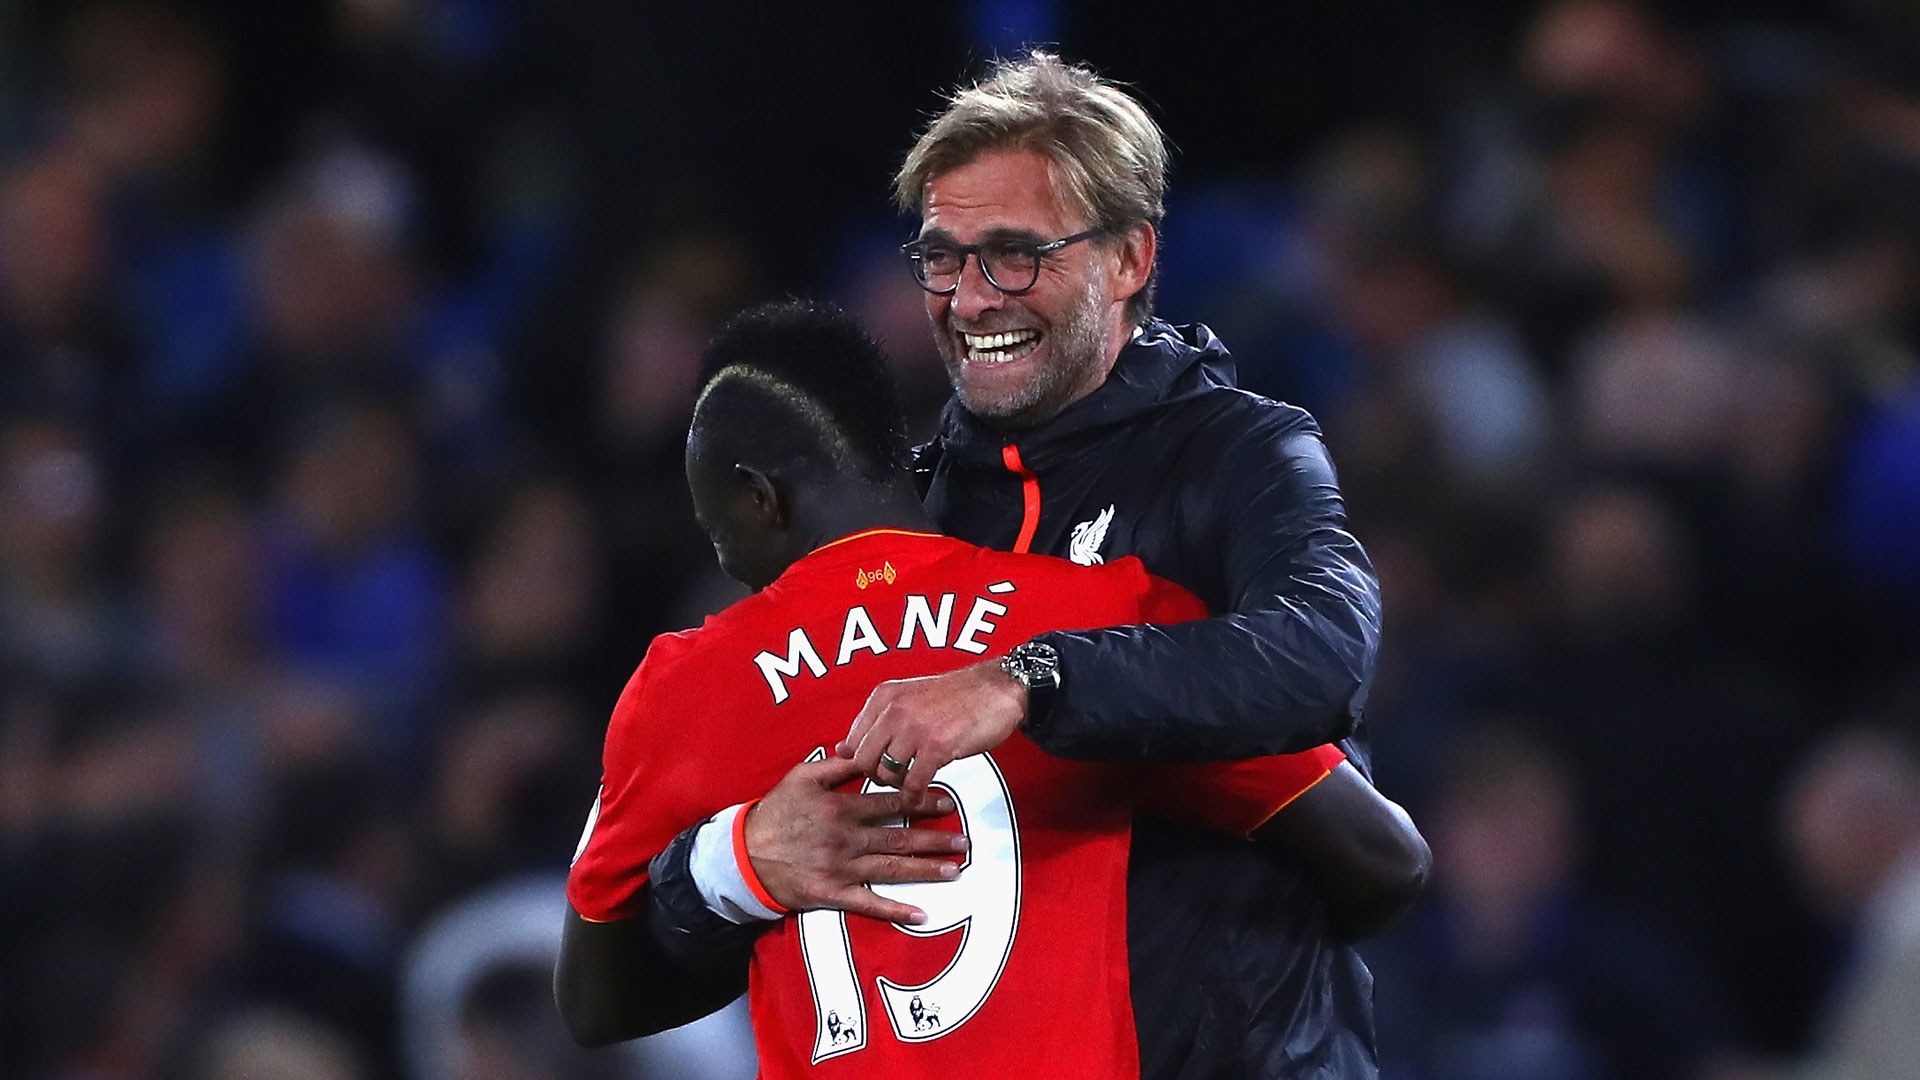 Nice Romantic Wallpapers With Quotes Sadio Mane Wallpaper